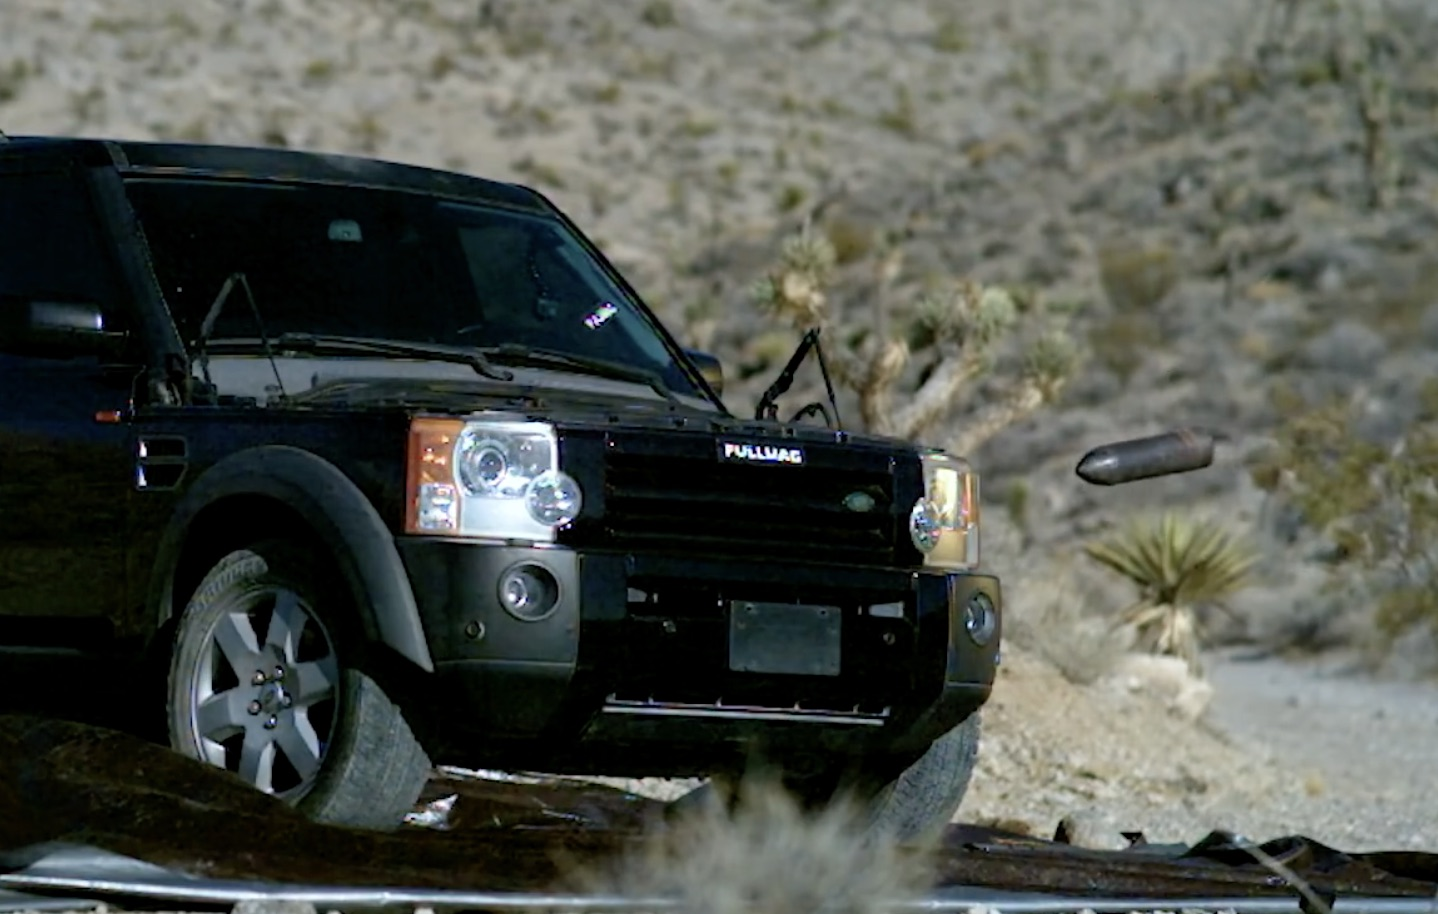 Fire For Effect: This Land Rover LR3's Days Come To An Abrupt End!